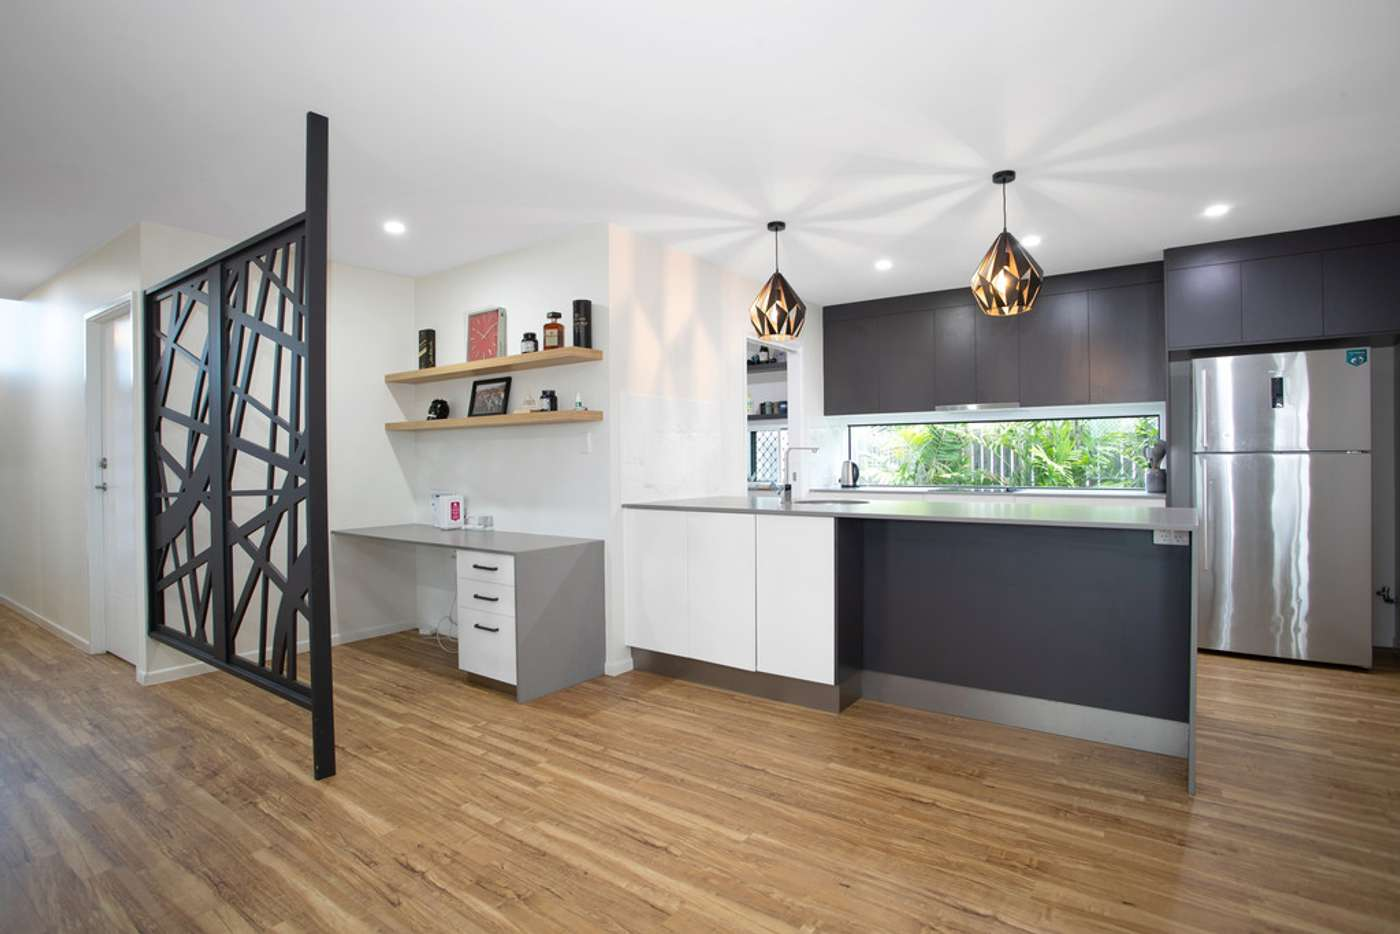 Main view of Homely house listing, 17 Bellavista Circuit, Beaconsfield QLD 4740